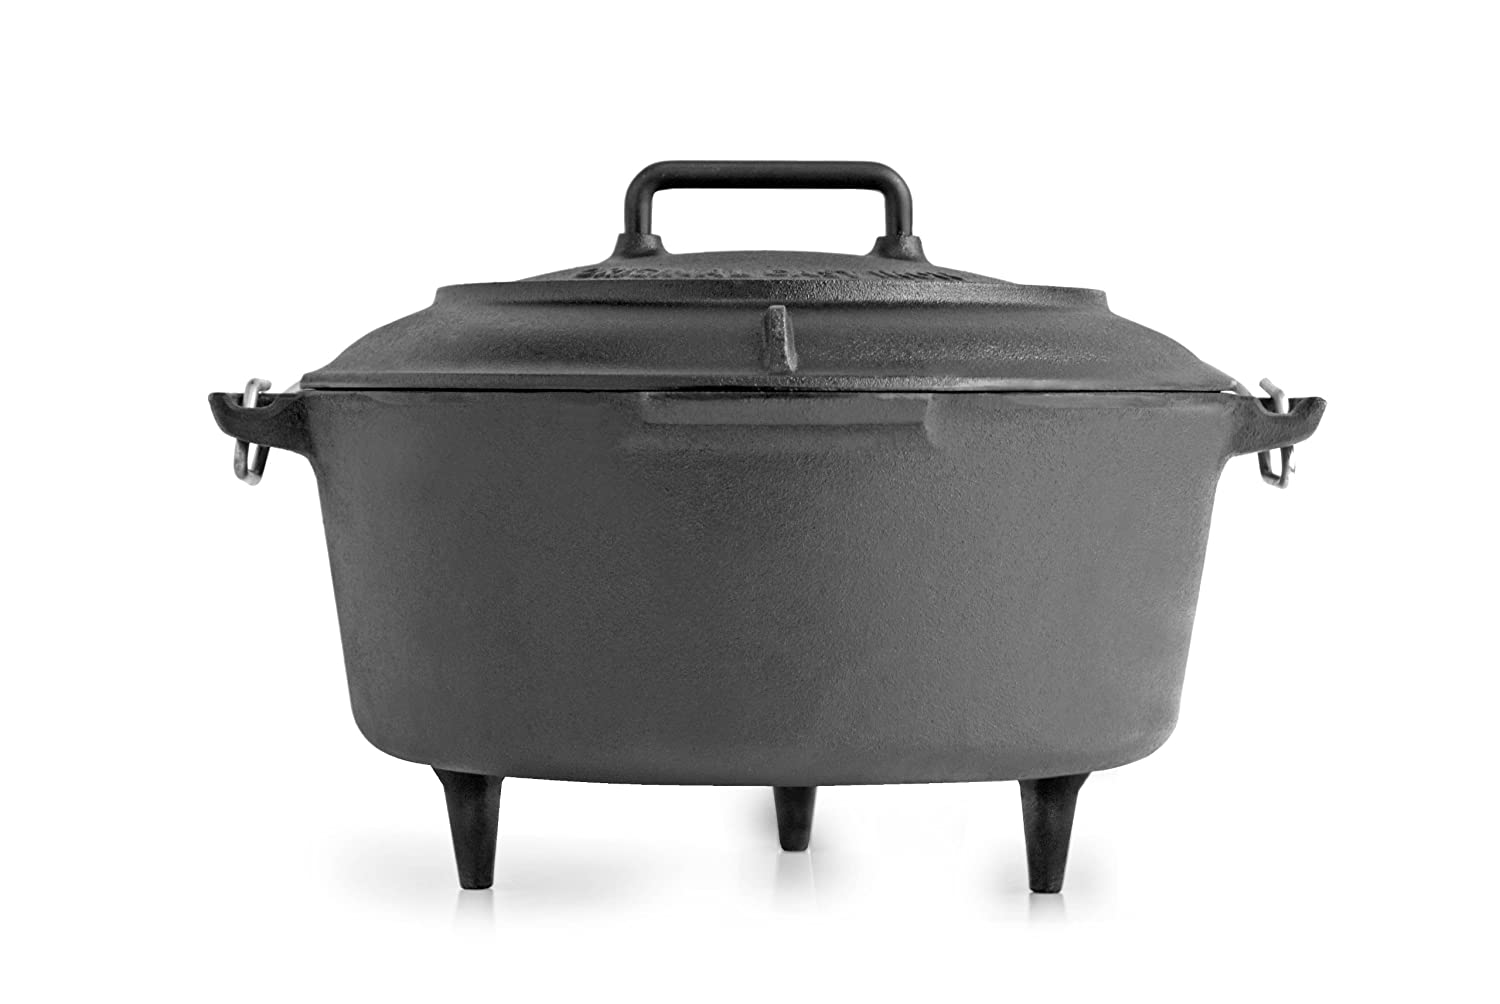 Volcano Grills VL-40-012 Cast Iron Vintage Style Dutch Oven for Camping, 8 quarts Black